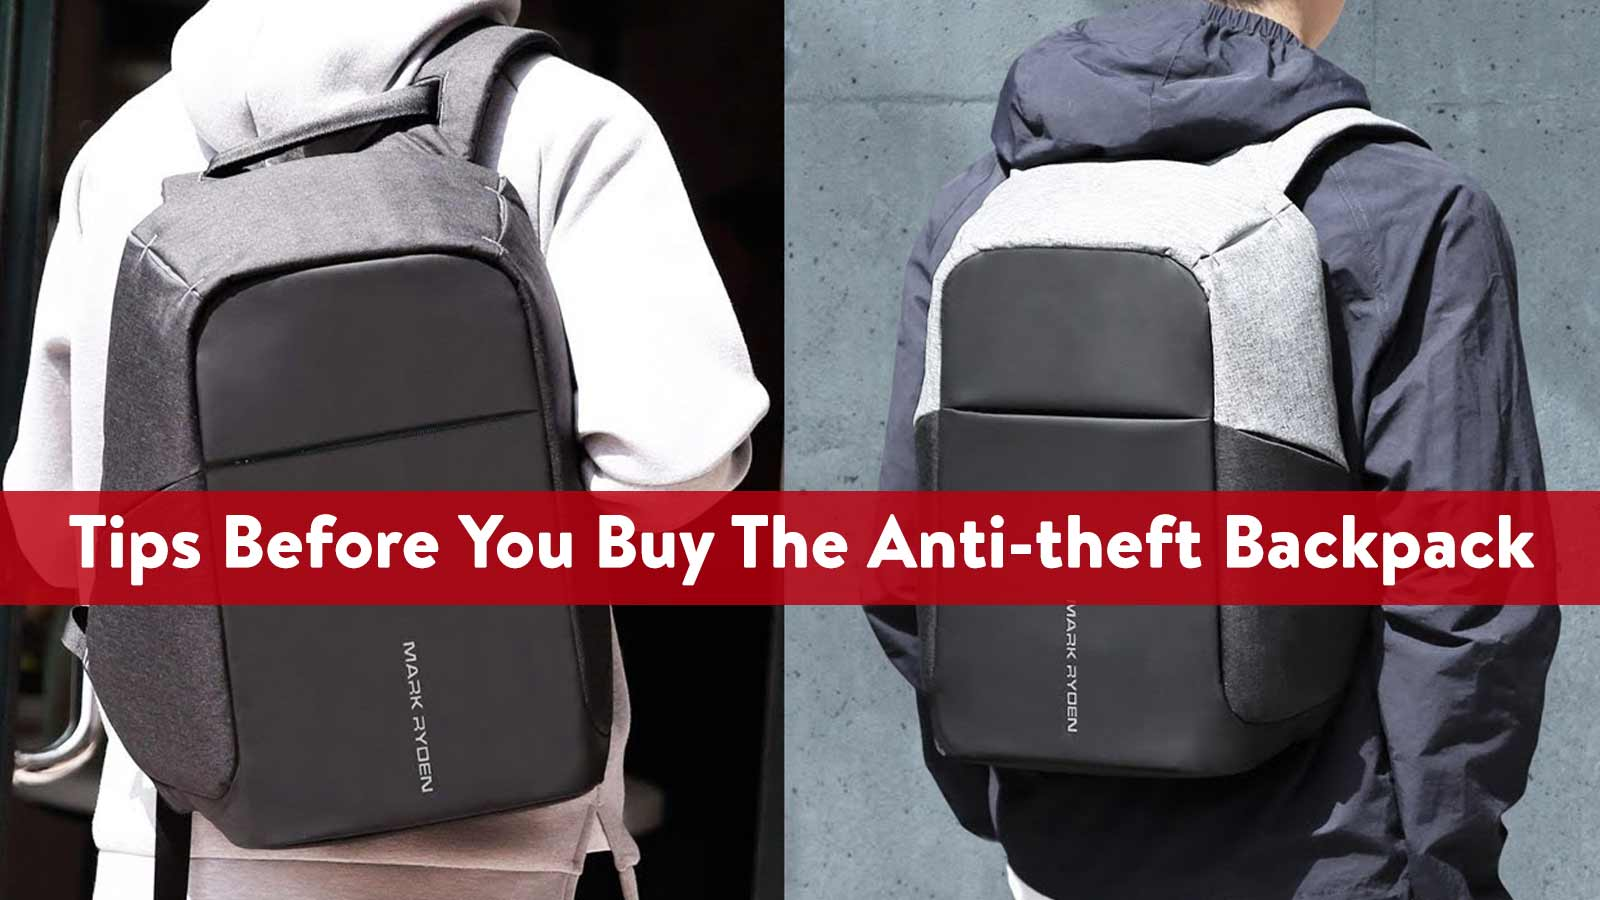 Tips Before You Buy The Anti-theft Backpack